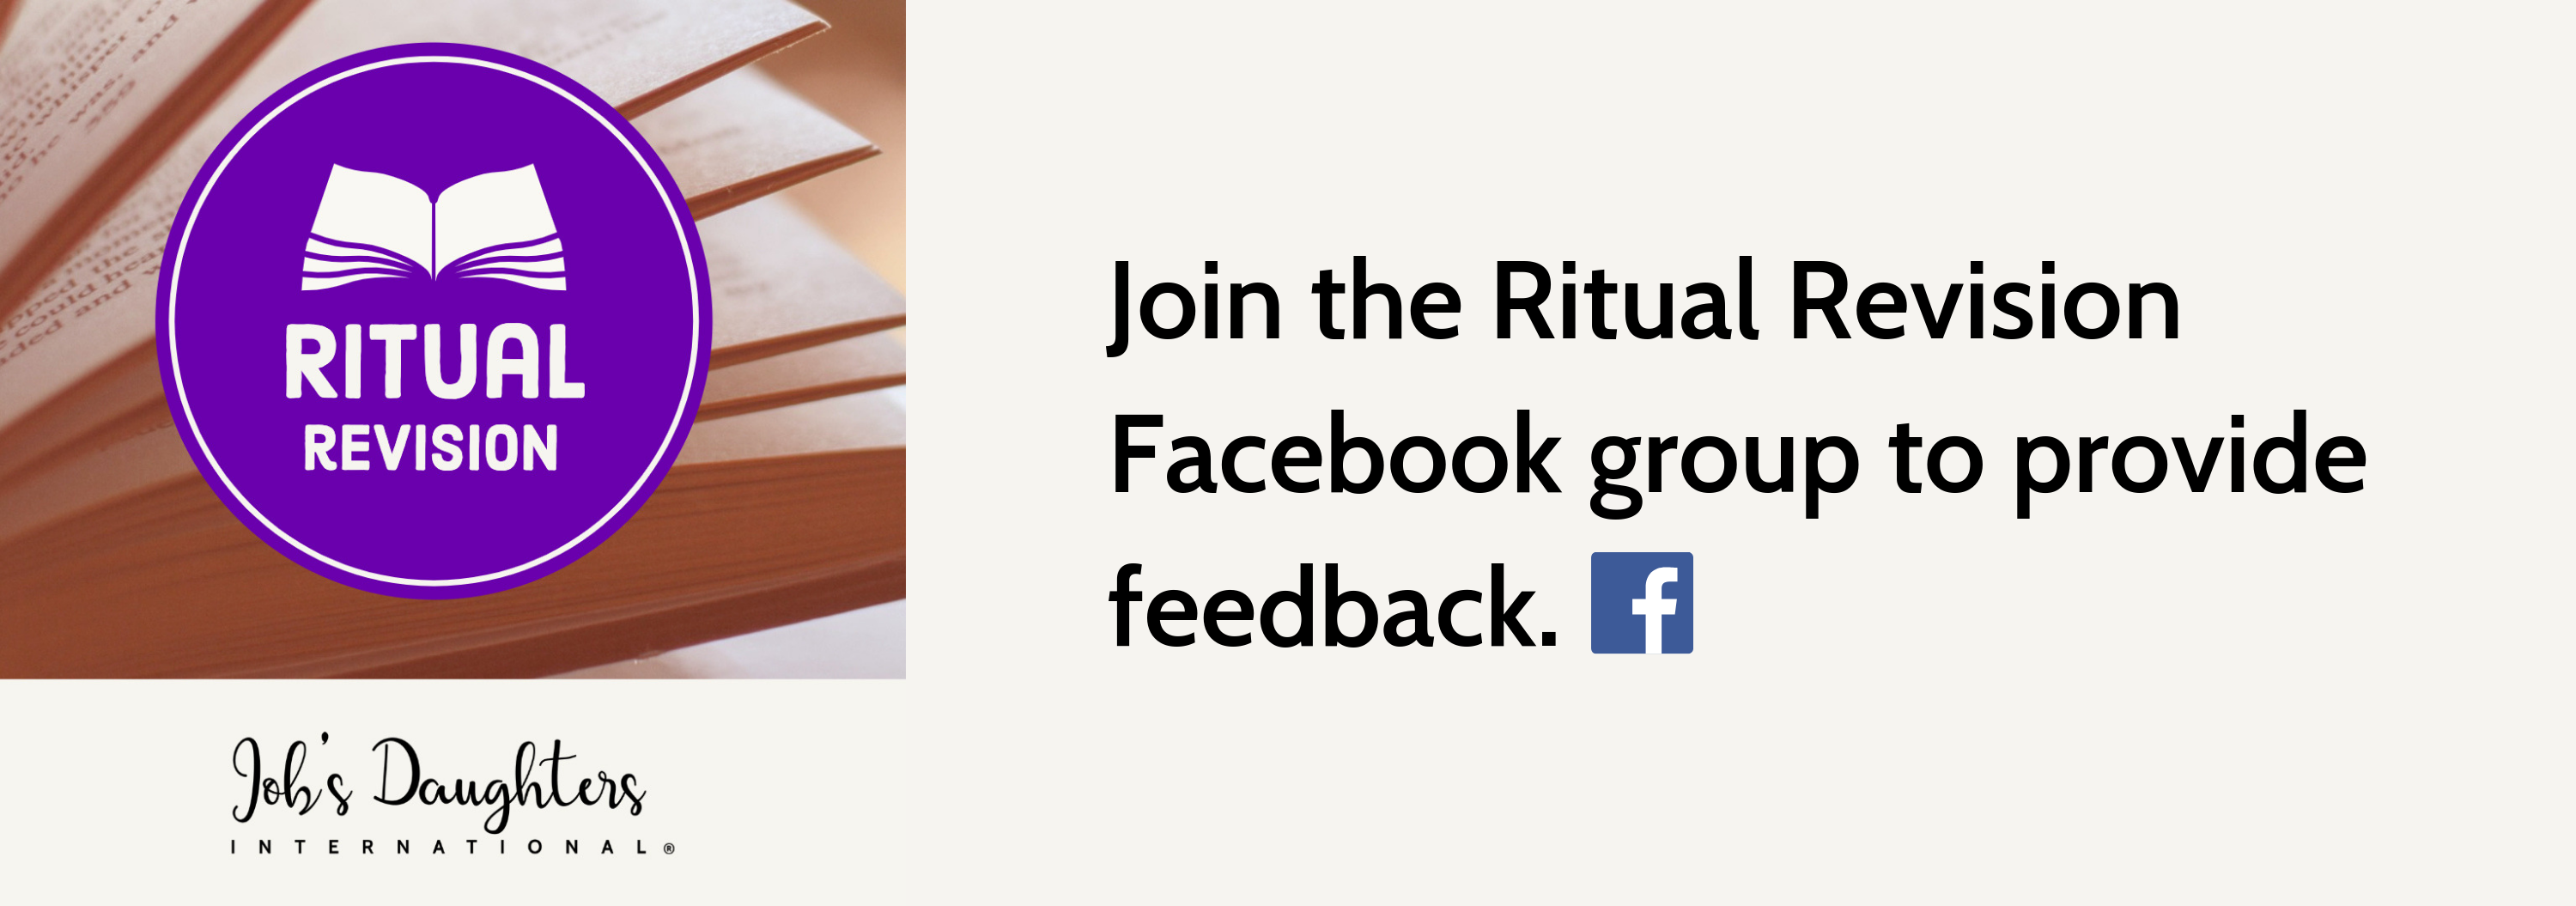 Join the Ritual Revision Facebook group to provide feedback.